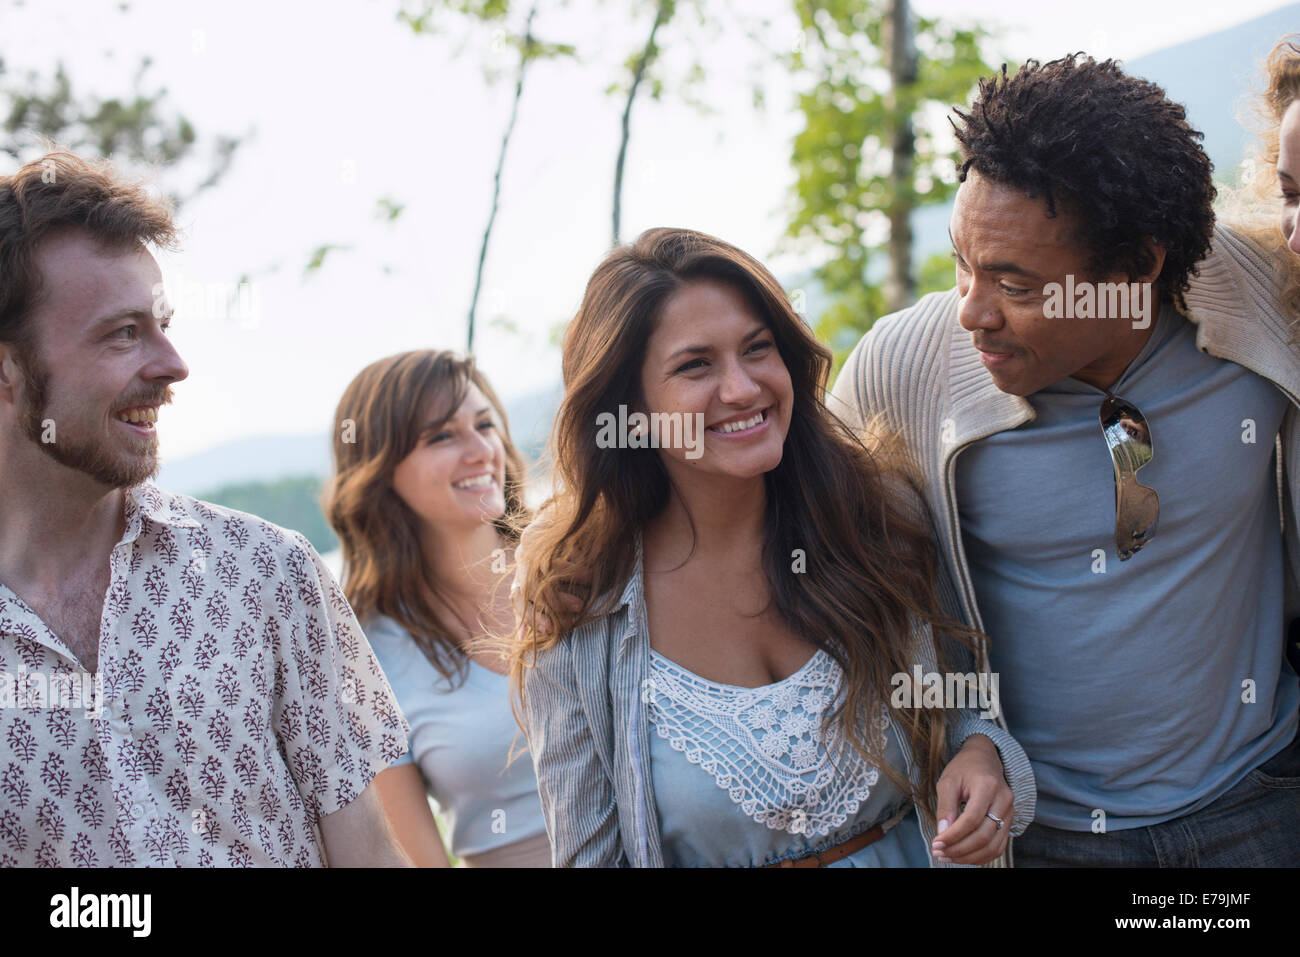 A group of people enjoying a leisurely walk by a lake. - Stock Image